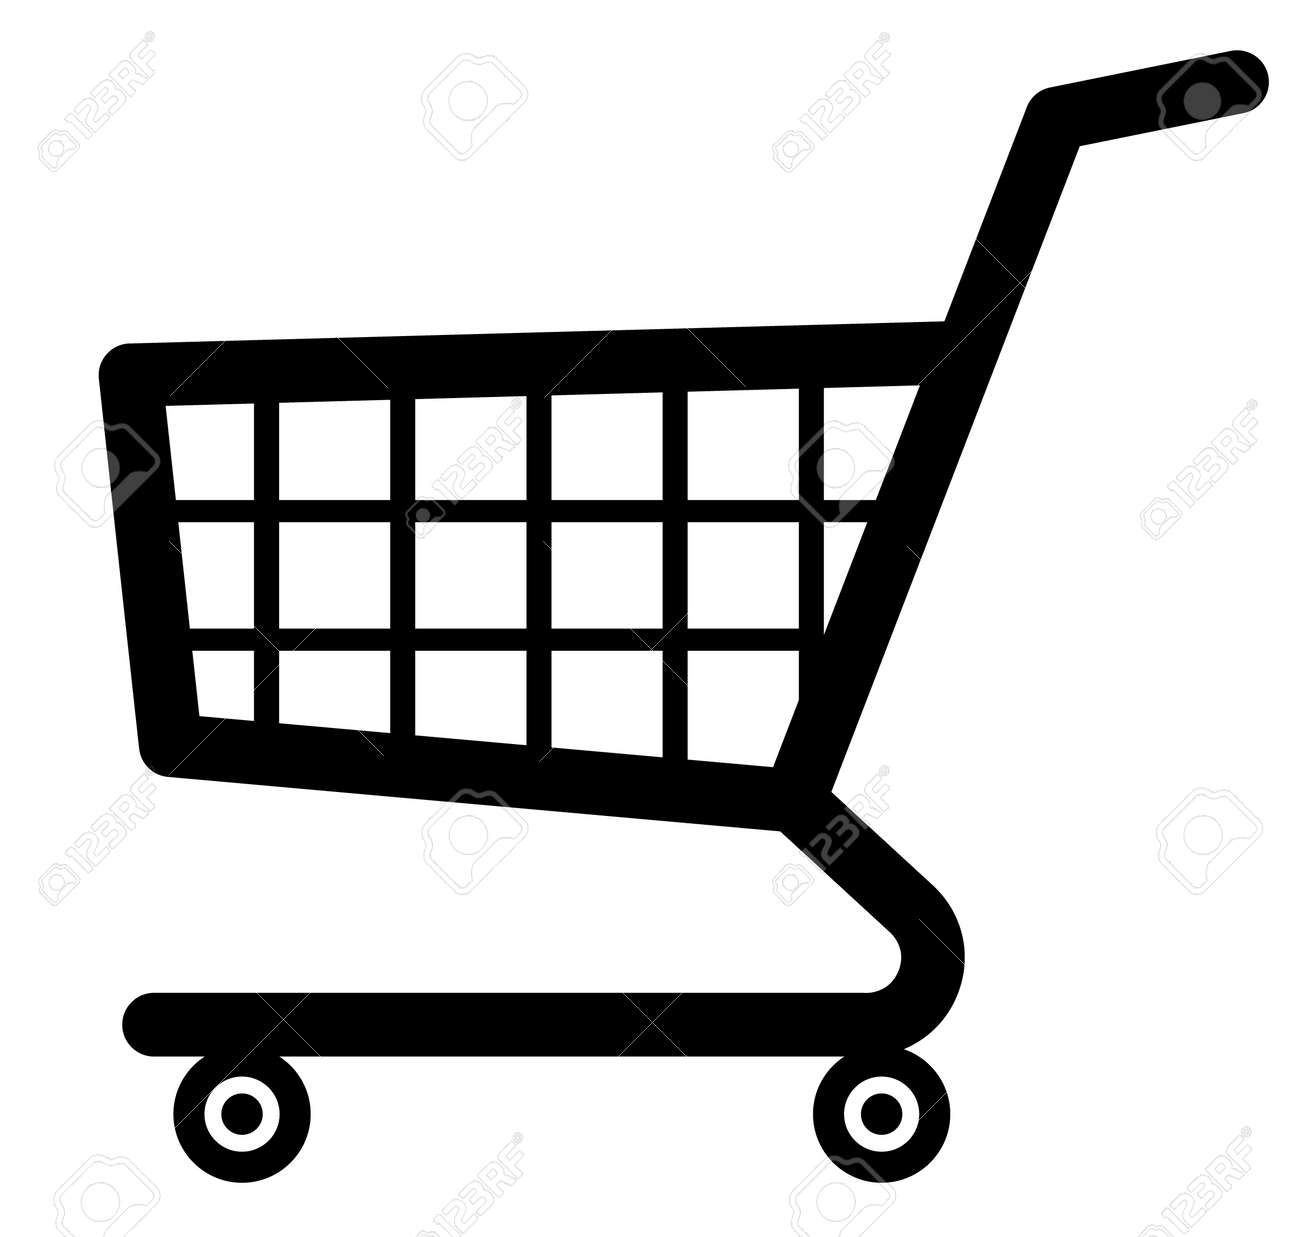 shopping cart icon vector royalty free cliparts vectors and rh 123rf com shopping cart bag icon vector shopping cart icon vector png